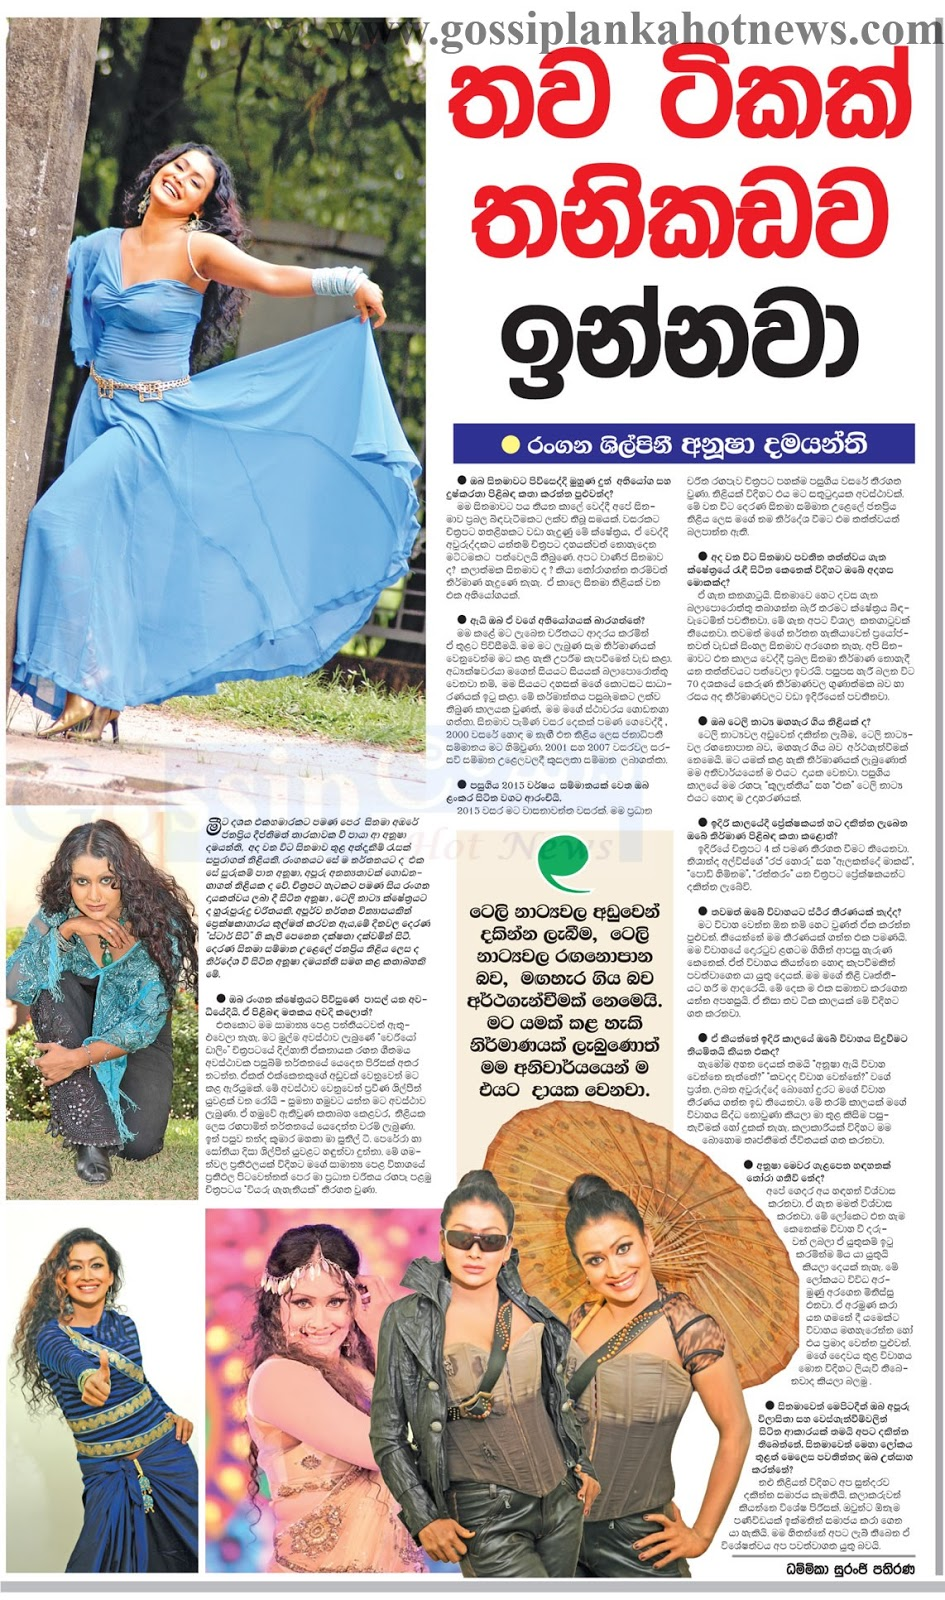 Gossip Lanka Gossip chat with Anusha Damayanthi